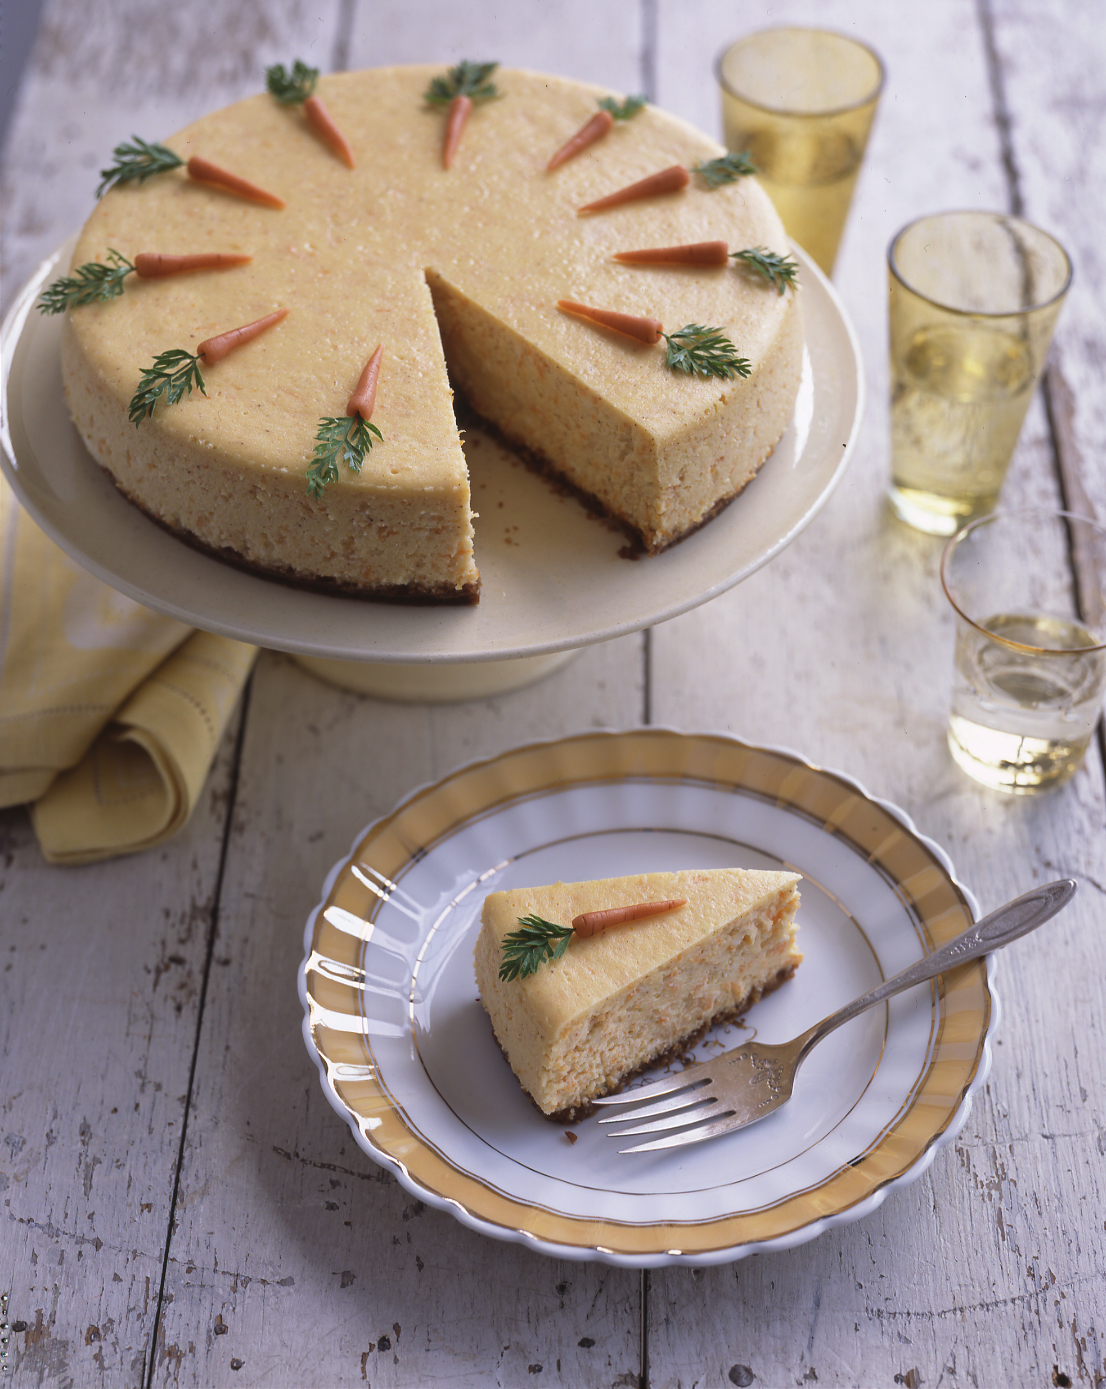 Carrot Cheesecake with Marzipan Carrots